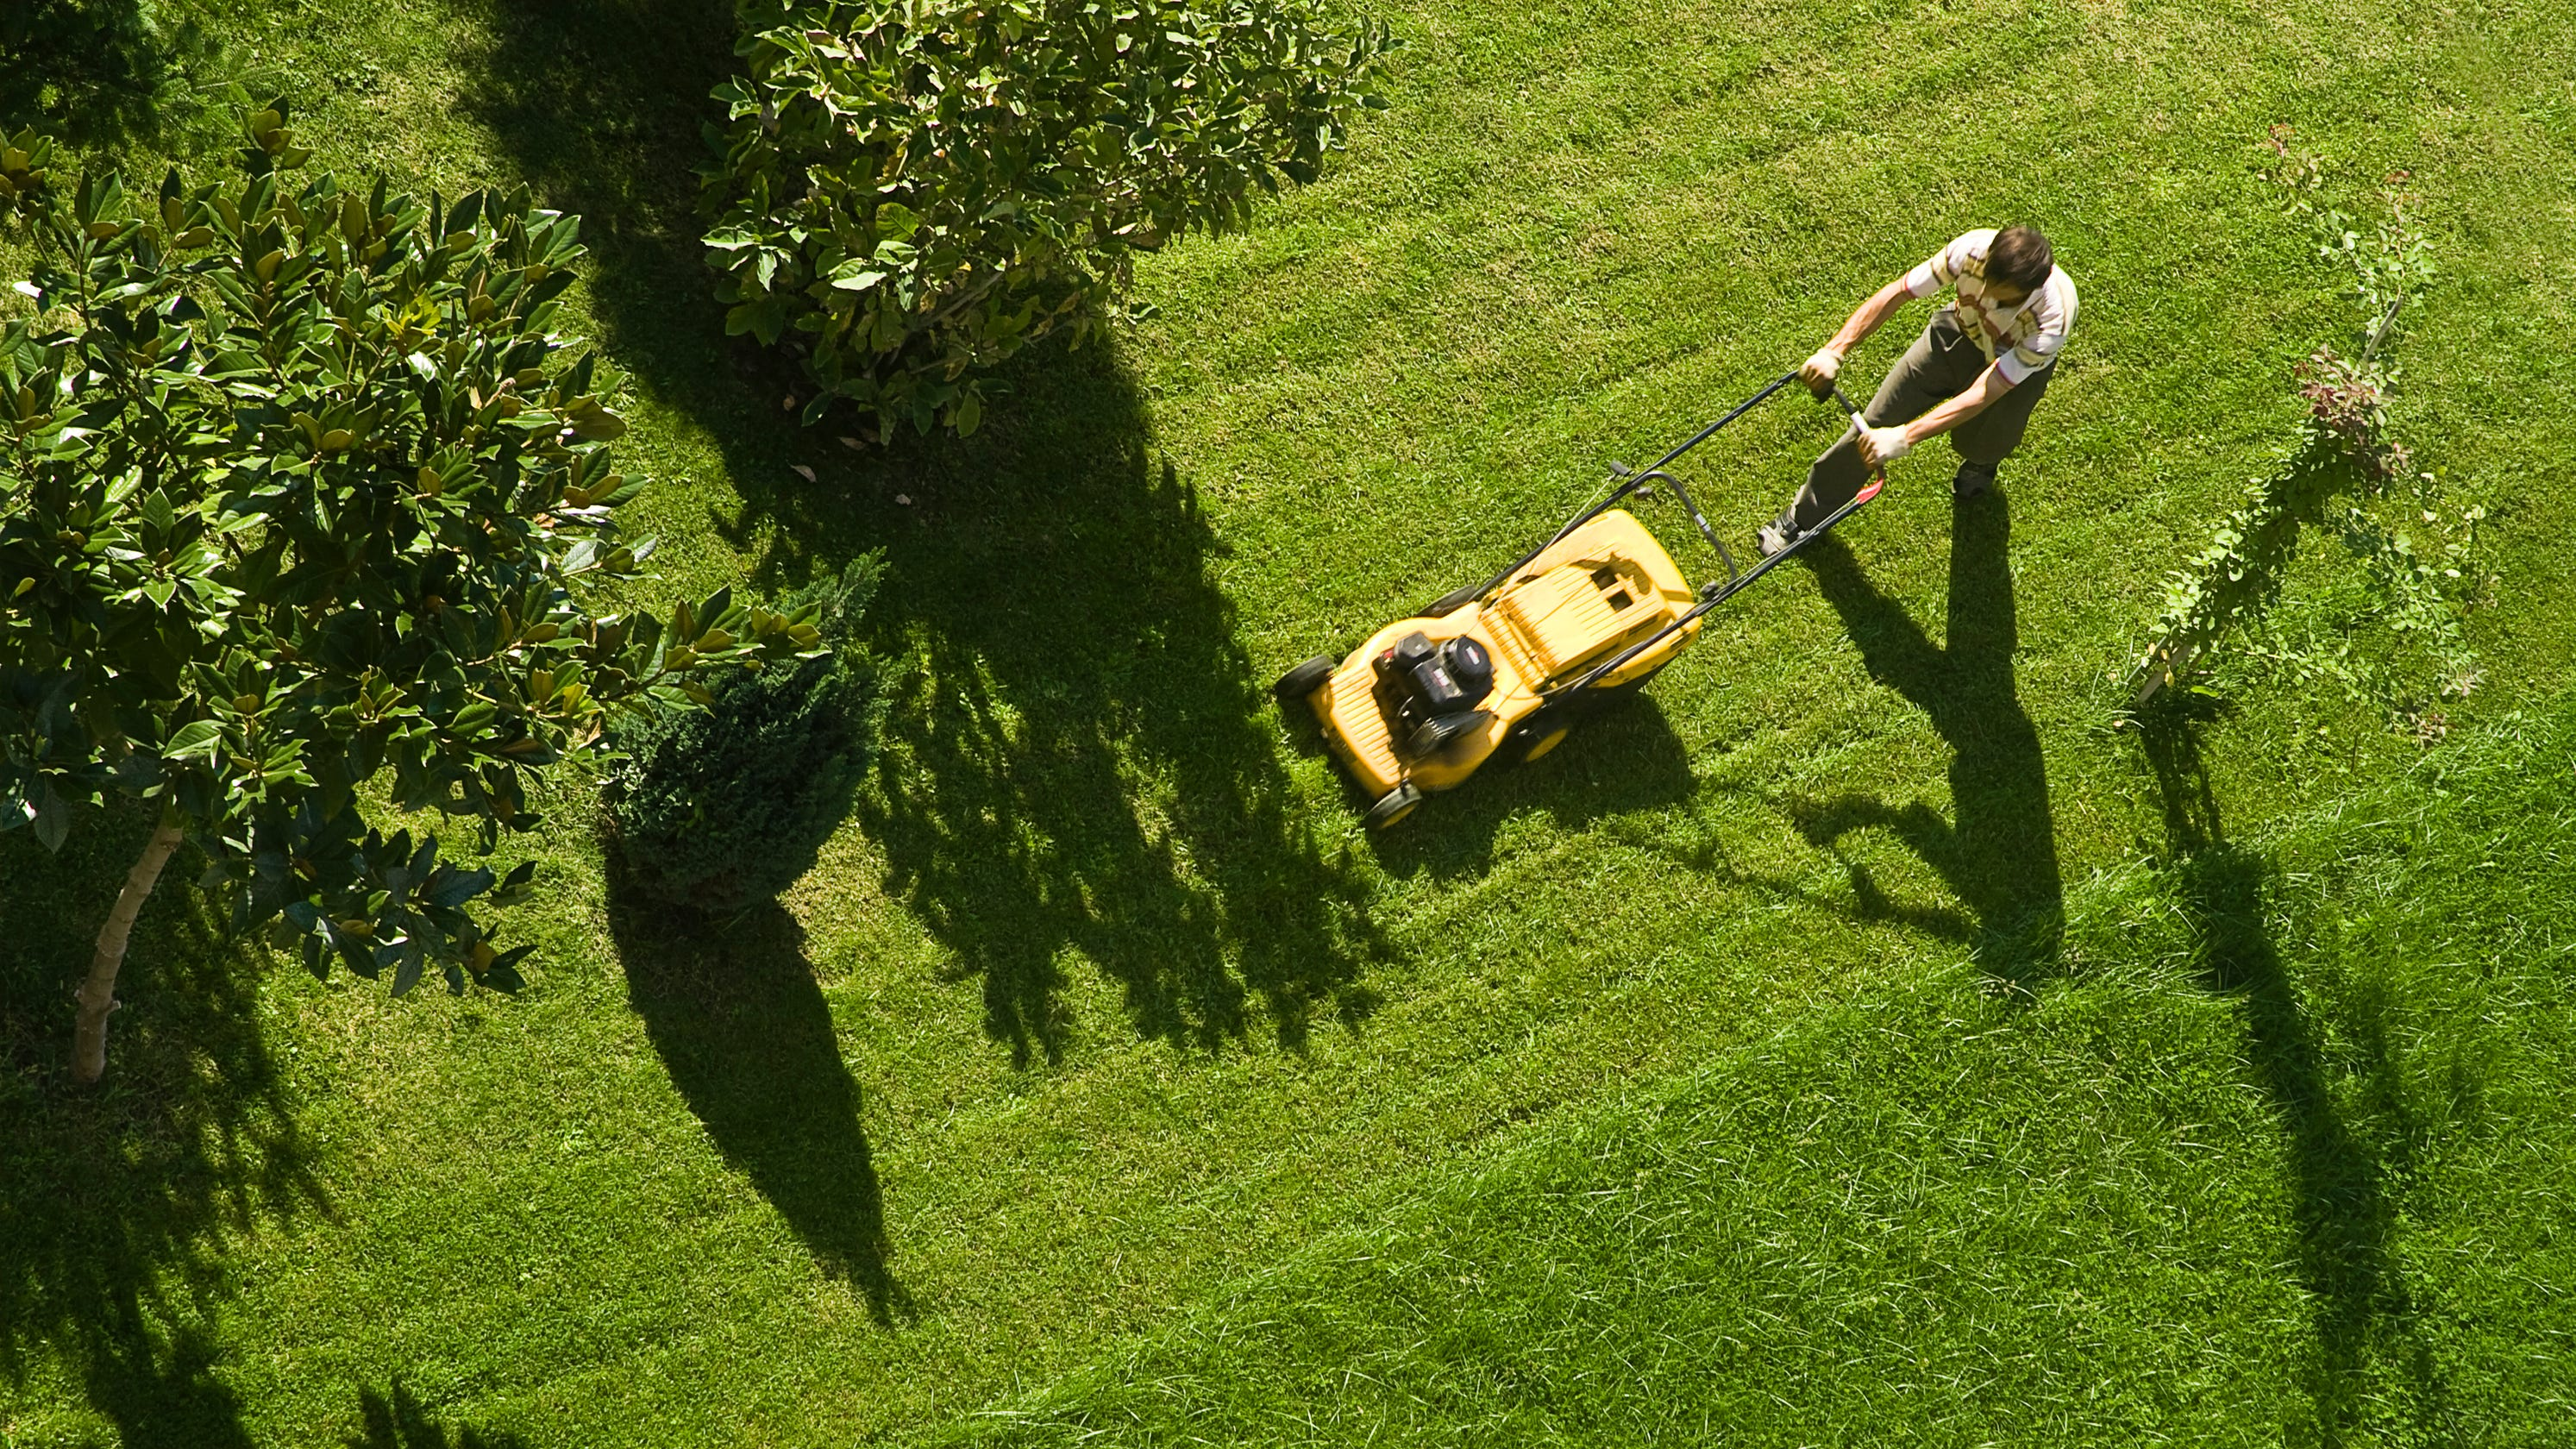 mowing the lawn: don't rake grass clippings or mow in same